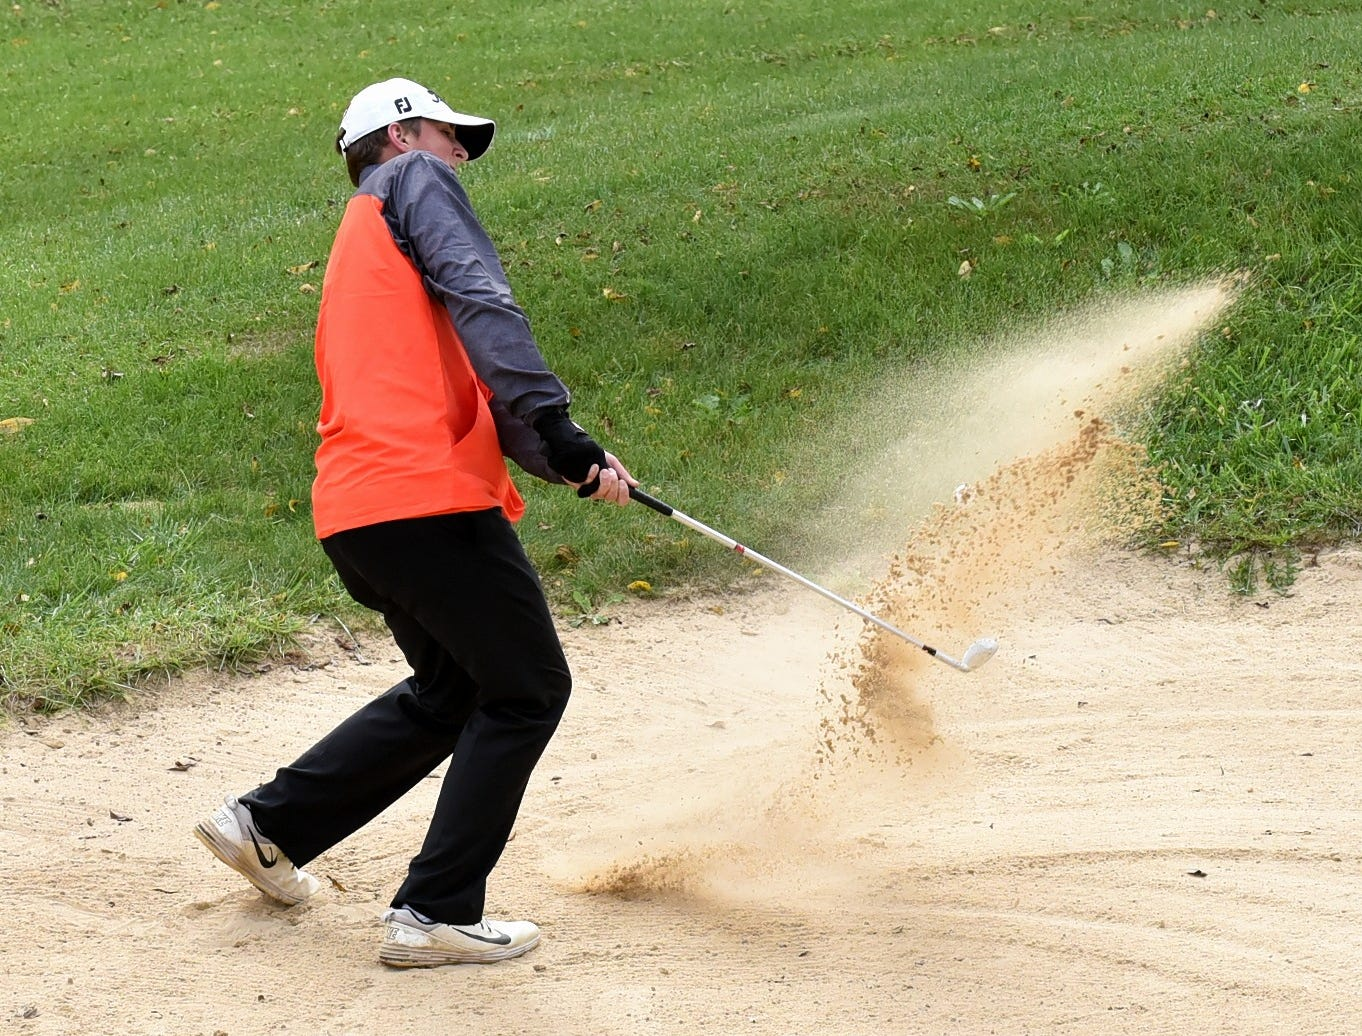 Peter Barton of Anderson battles the sandtrap on the back nine at the 2018 Southwest District Golf Tournament in Beavercreek, Ohio, October 11, 2018.